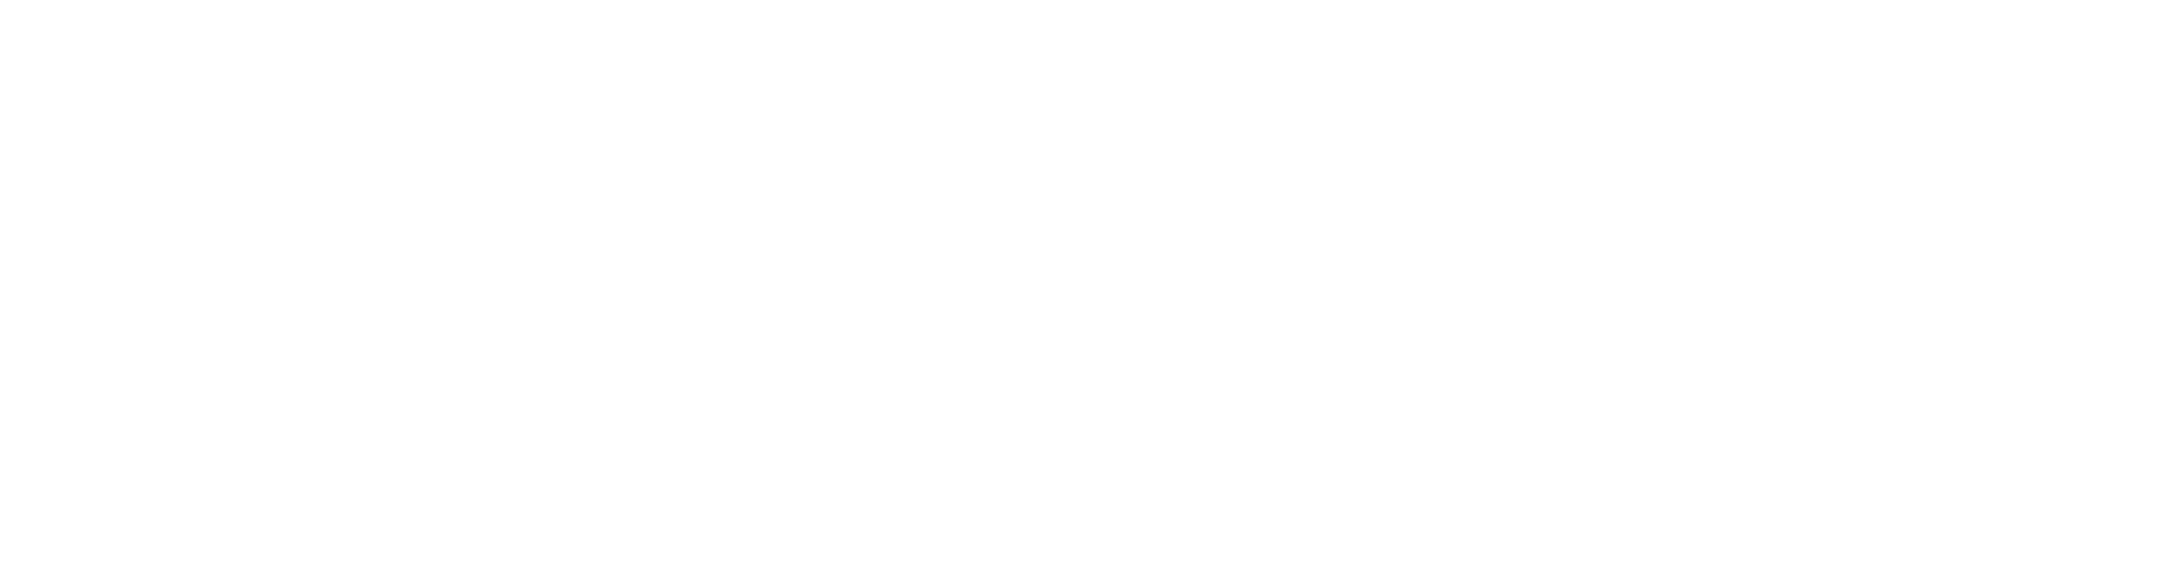 Stocks and Flows Data Hub